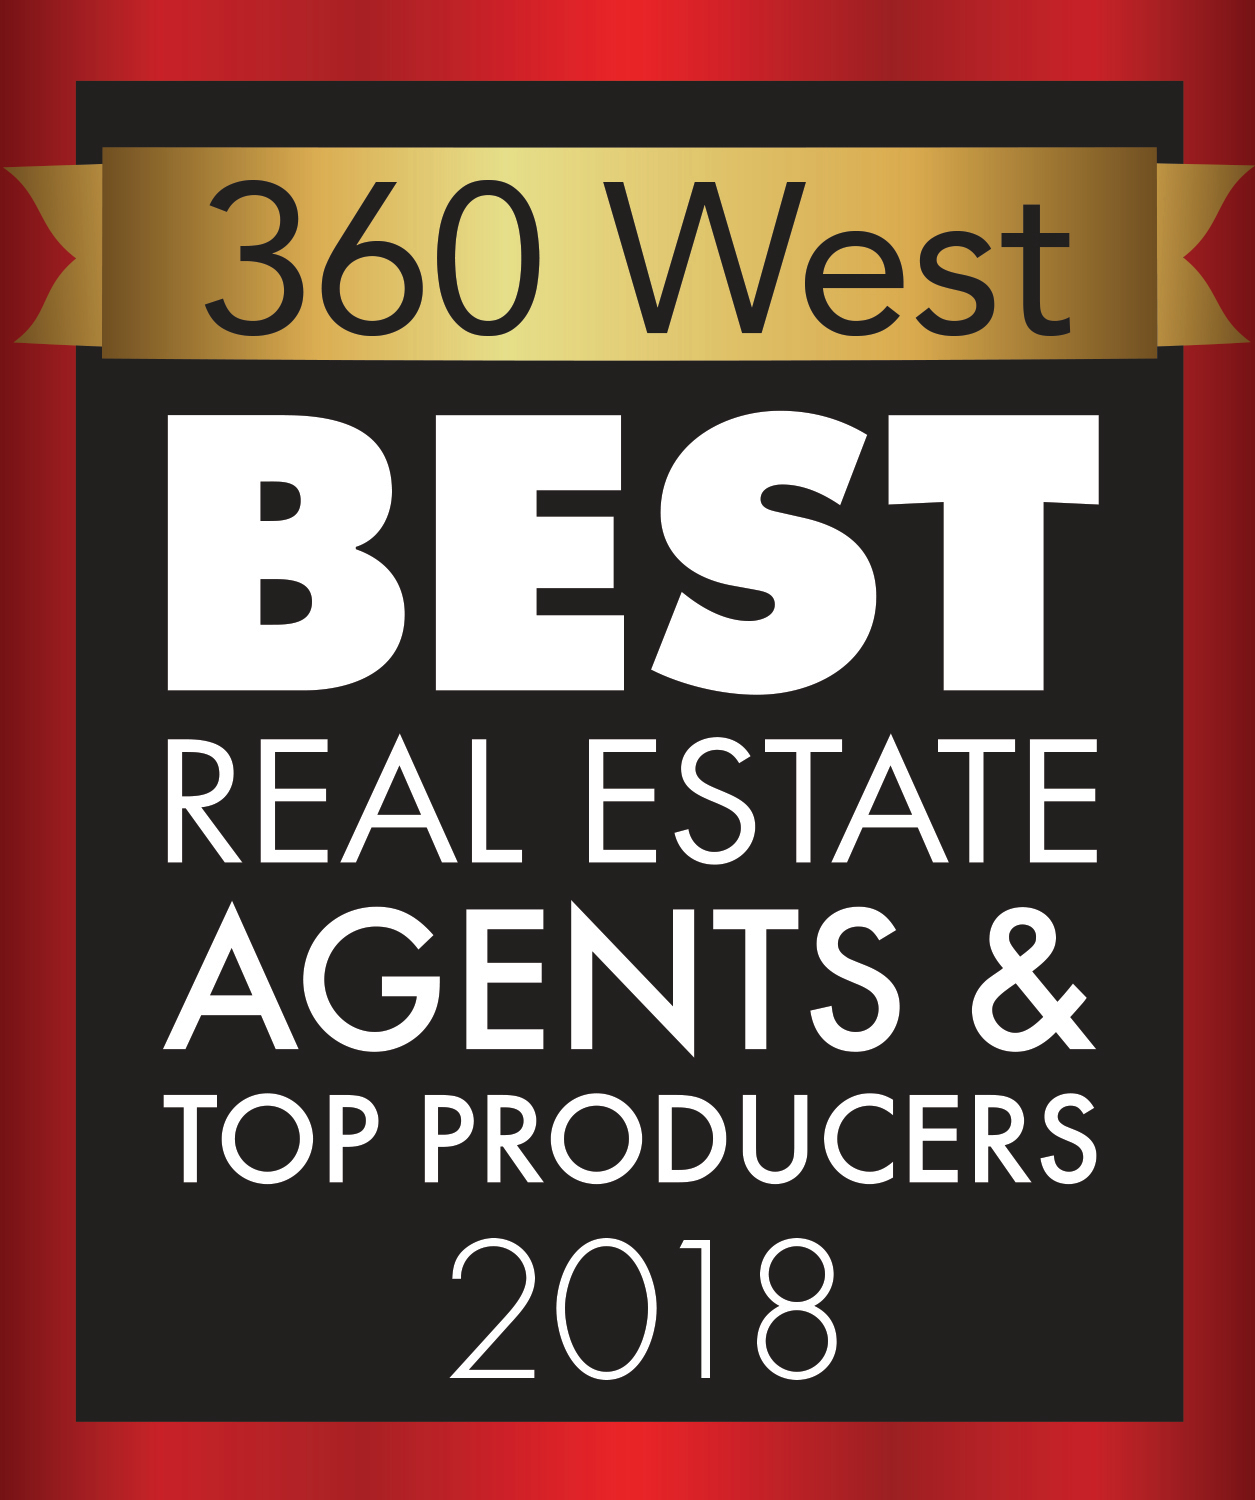 360 West Best Real Estate Agents and Top Producers